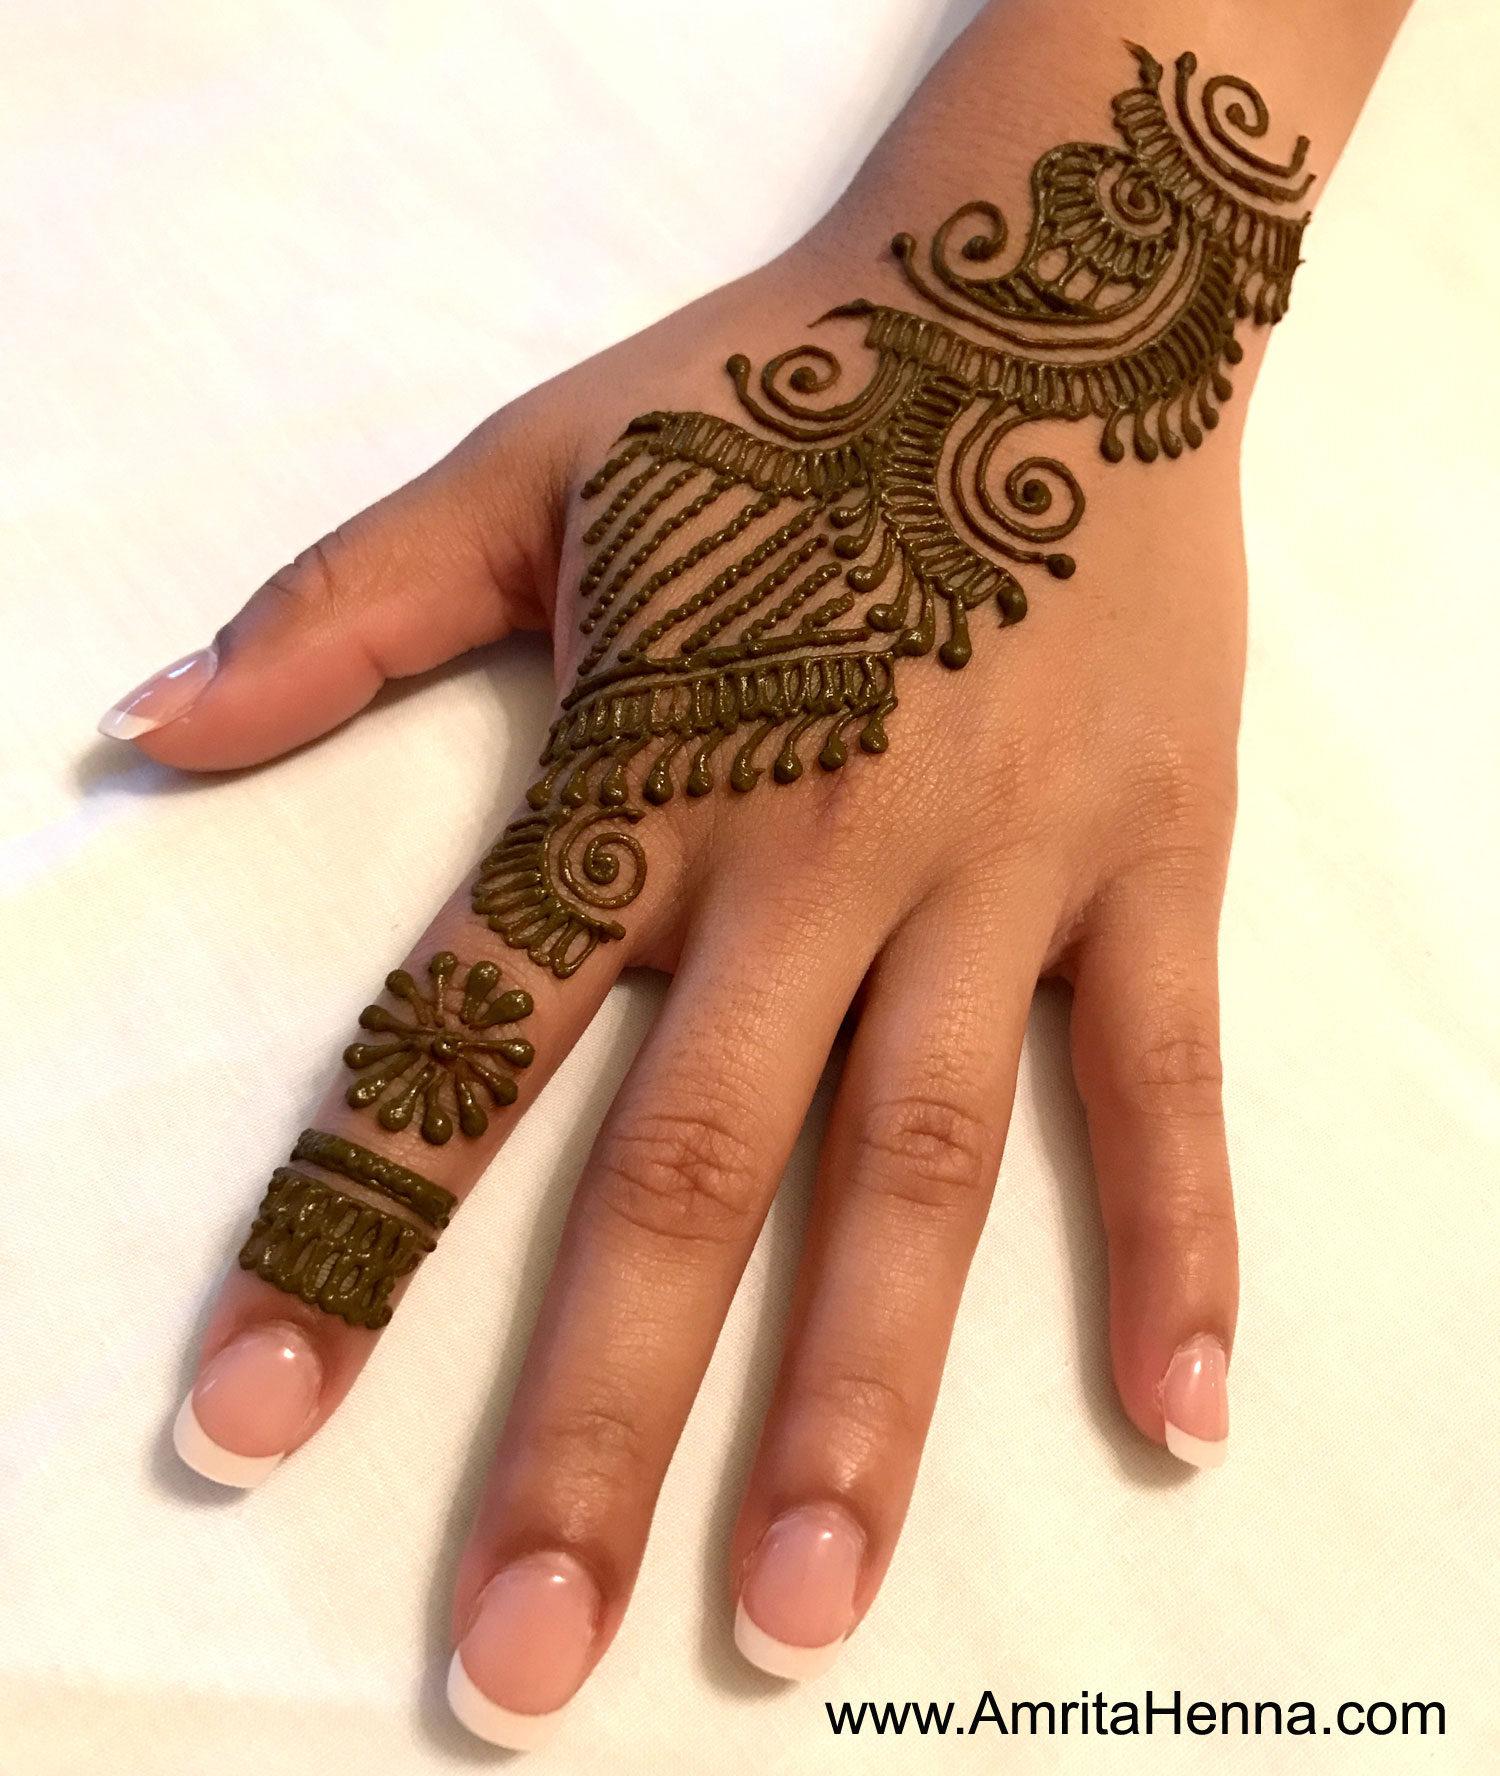 top 10 beautiful henna designs for indian raksha bandhan festival henna tattoo mehndi art by. Black Bedroom Furniture Sets. Home Design Ideas